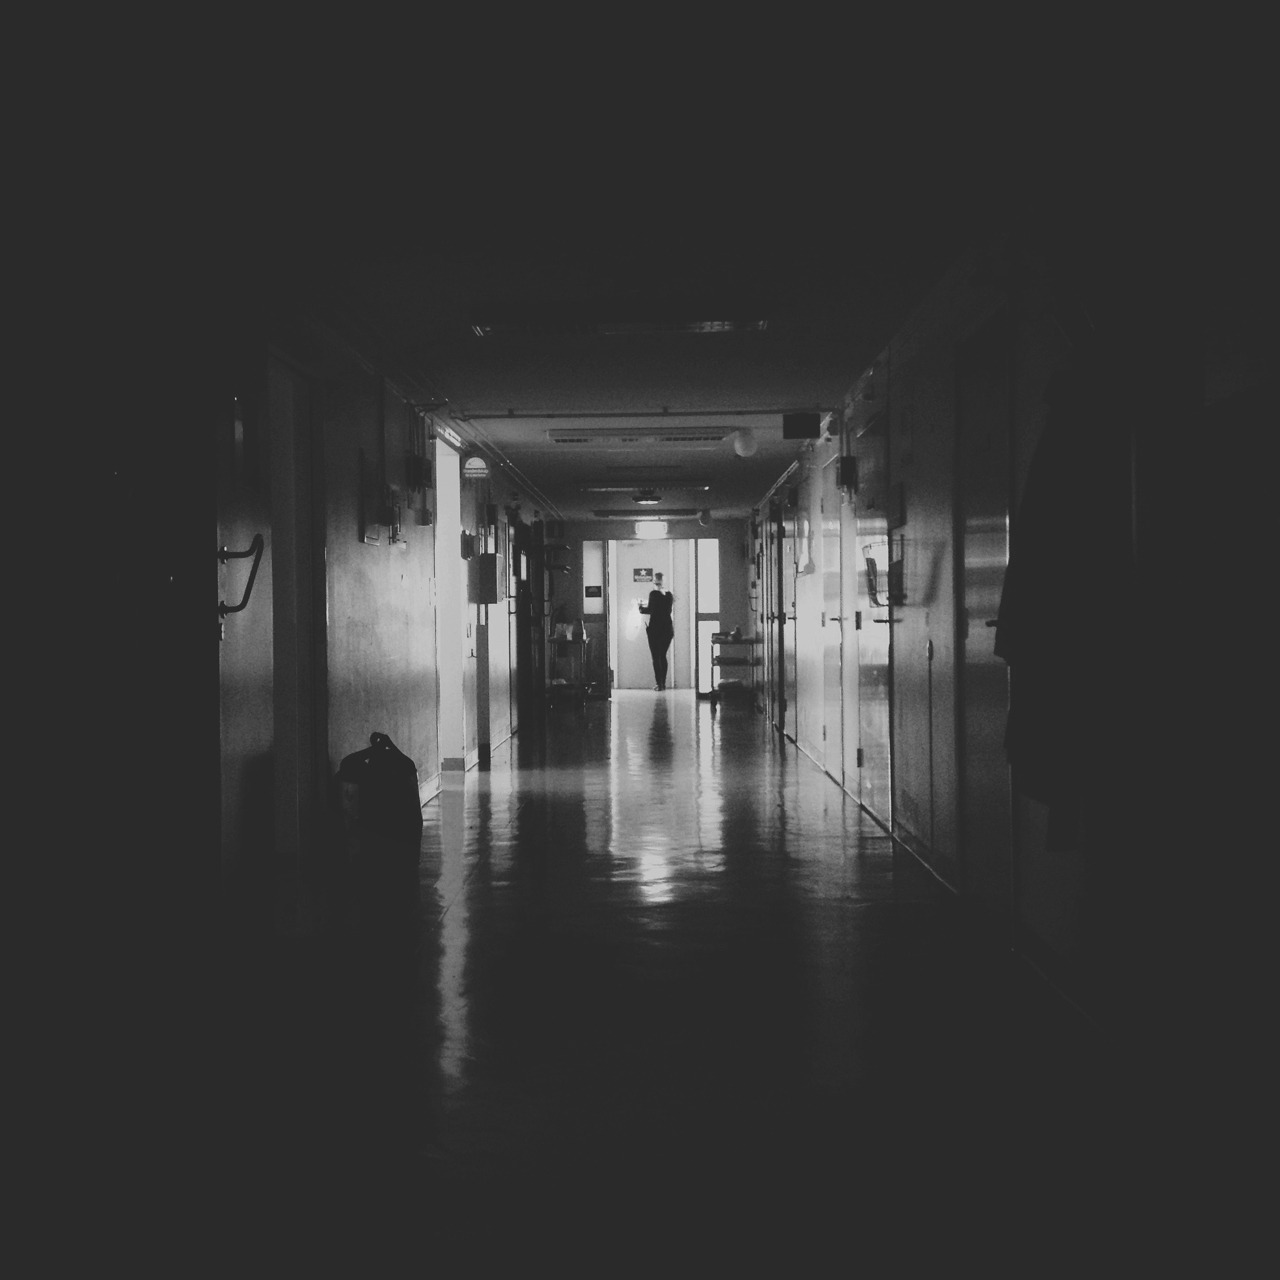 A quick b&w snapshot from the hospital set of our dear Caroline carrying a bag of…party hats? Guns? Lamingtons? I don't know, either way, she did it like a baws.